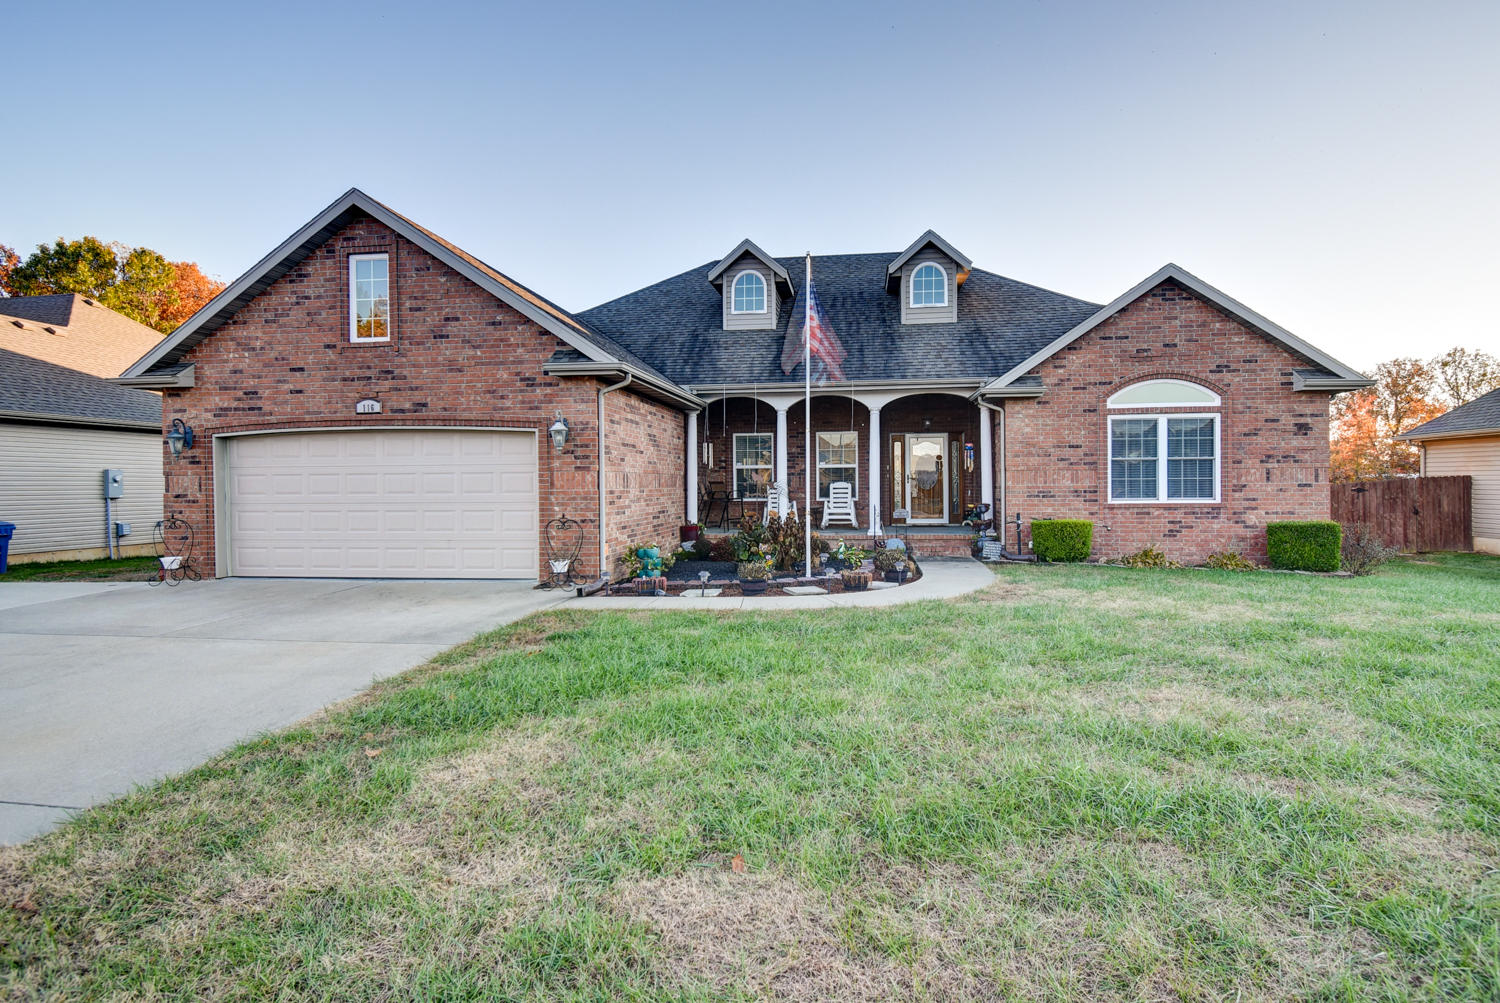 116 East Sally Lane Strafford, MO 65757